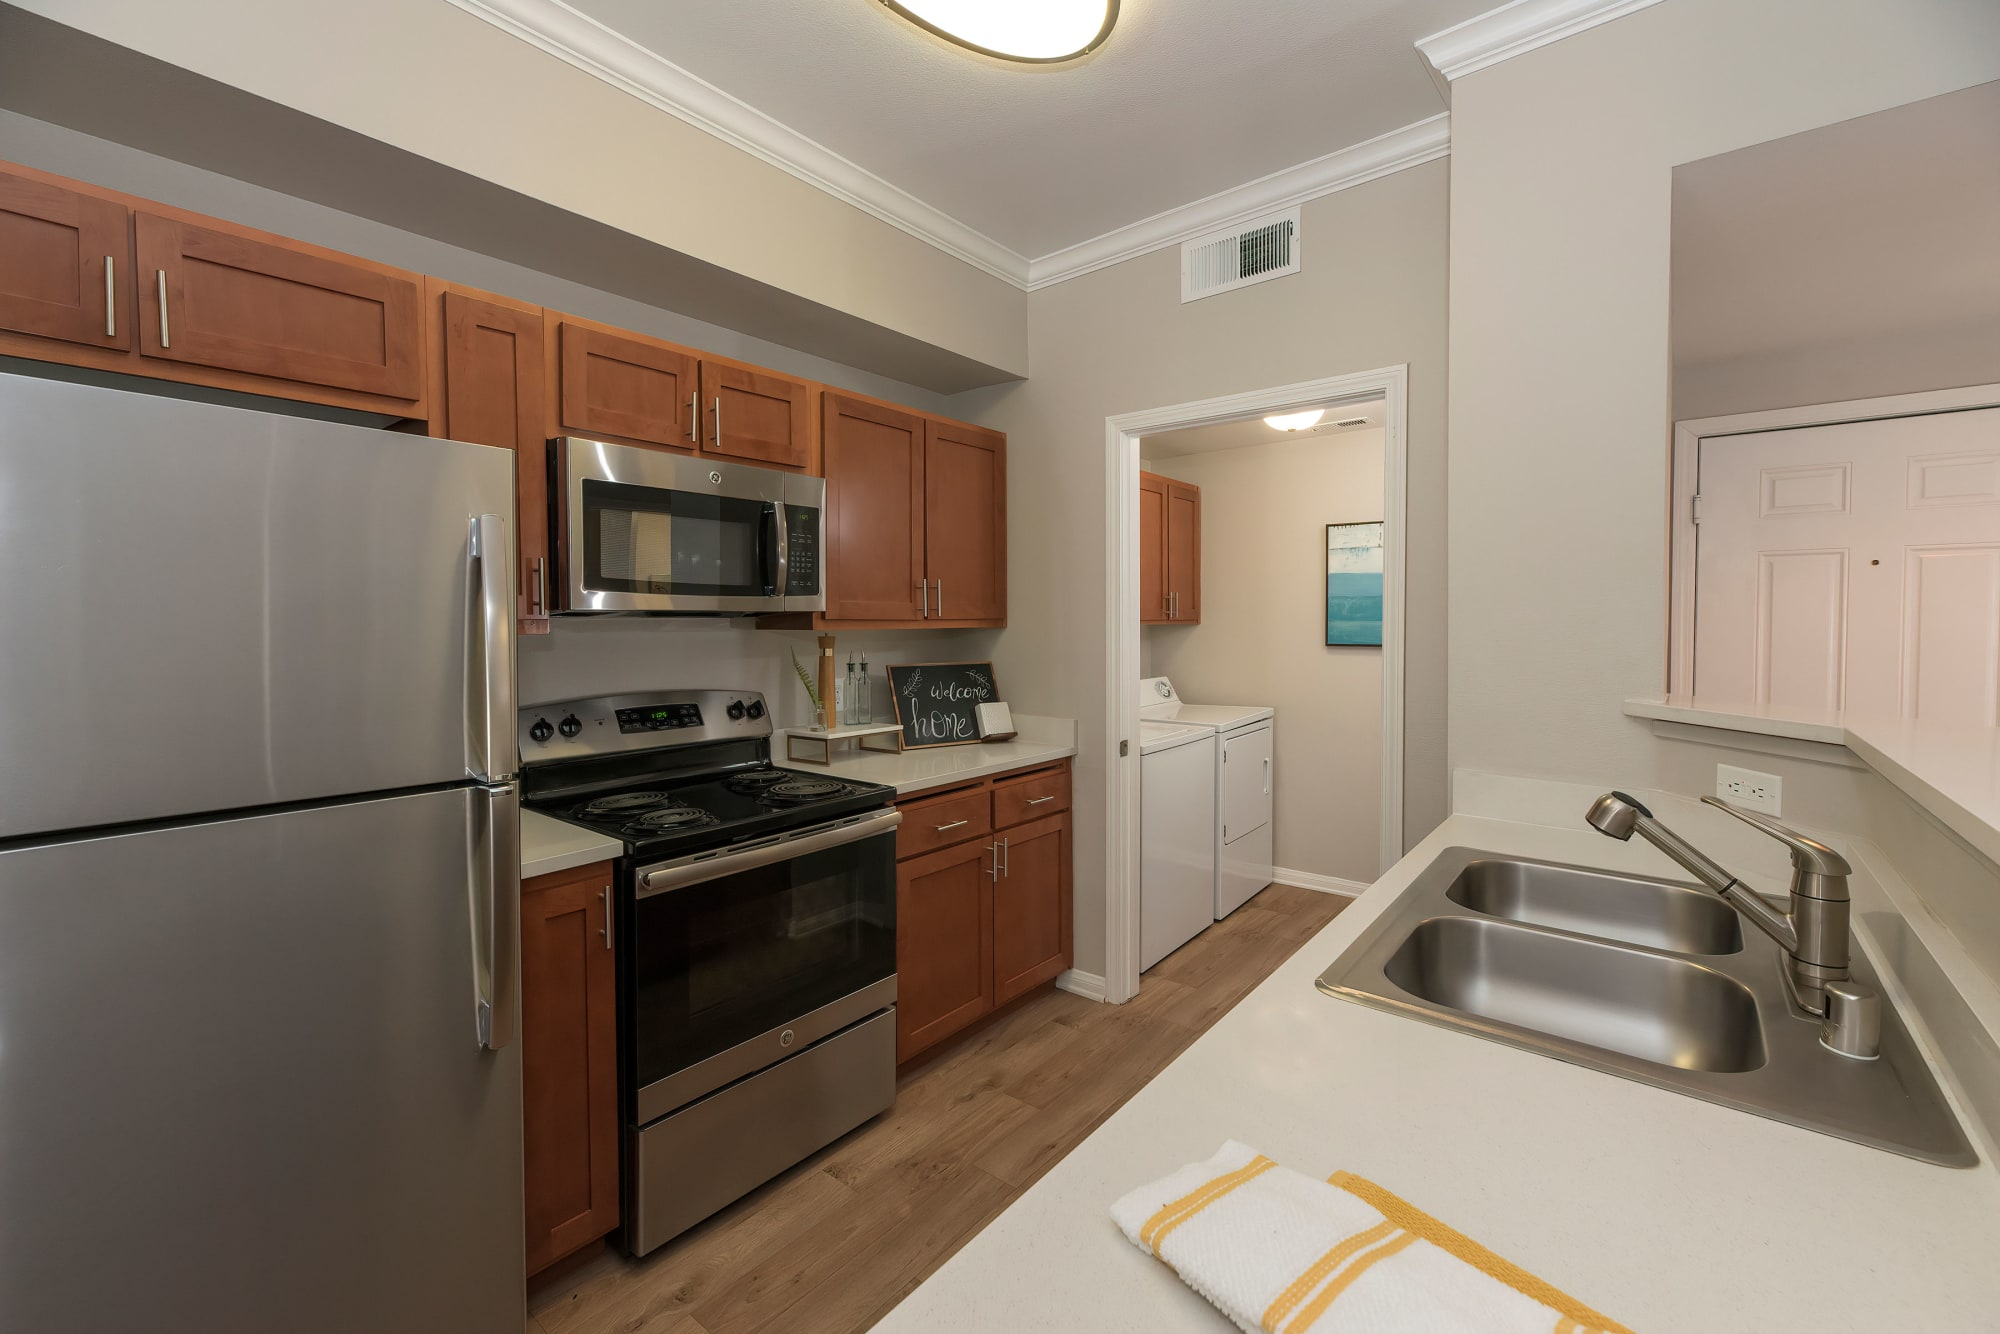 A modern apartment kitchen at Avion Apartments in Rancho Cordova, California